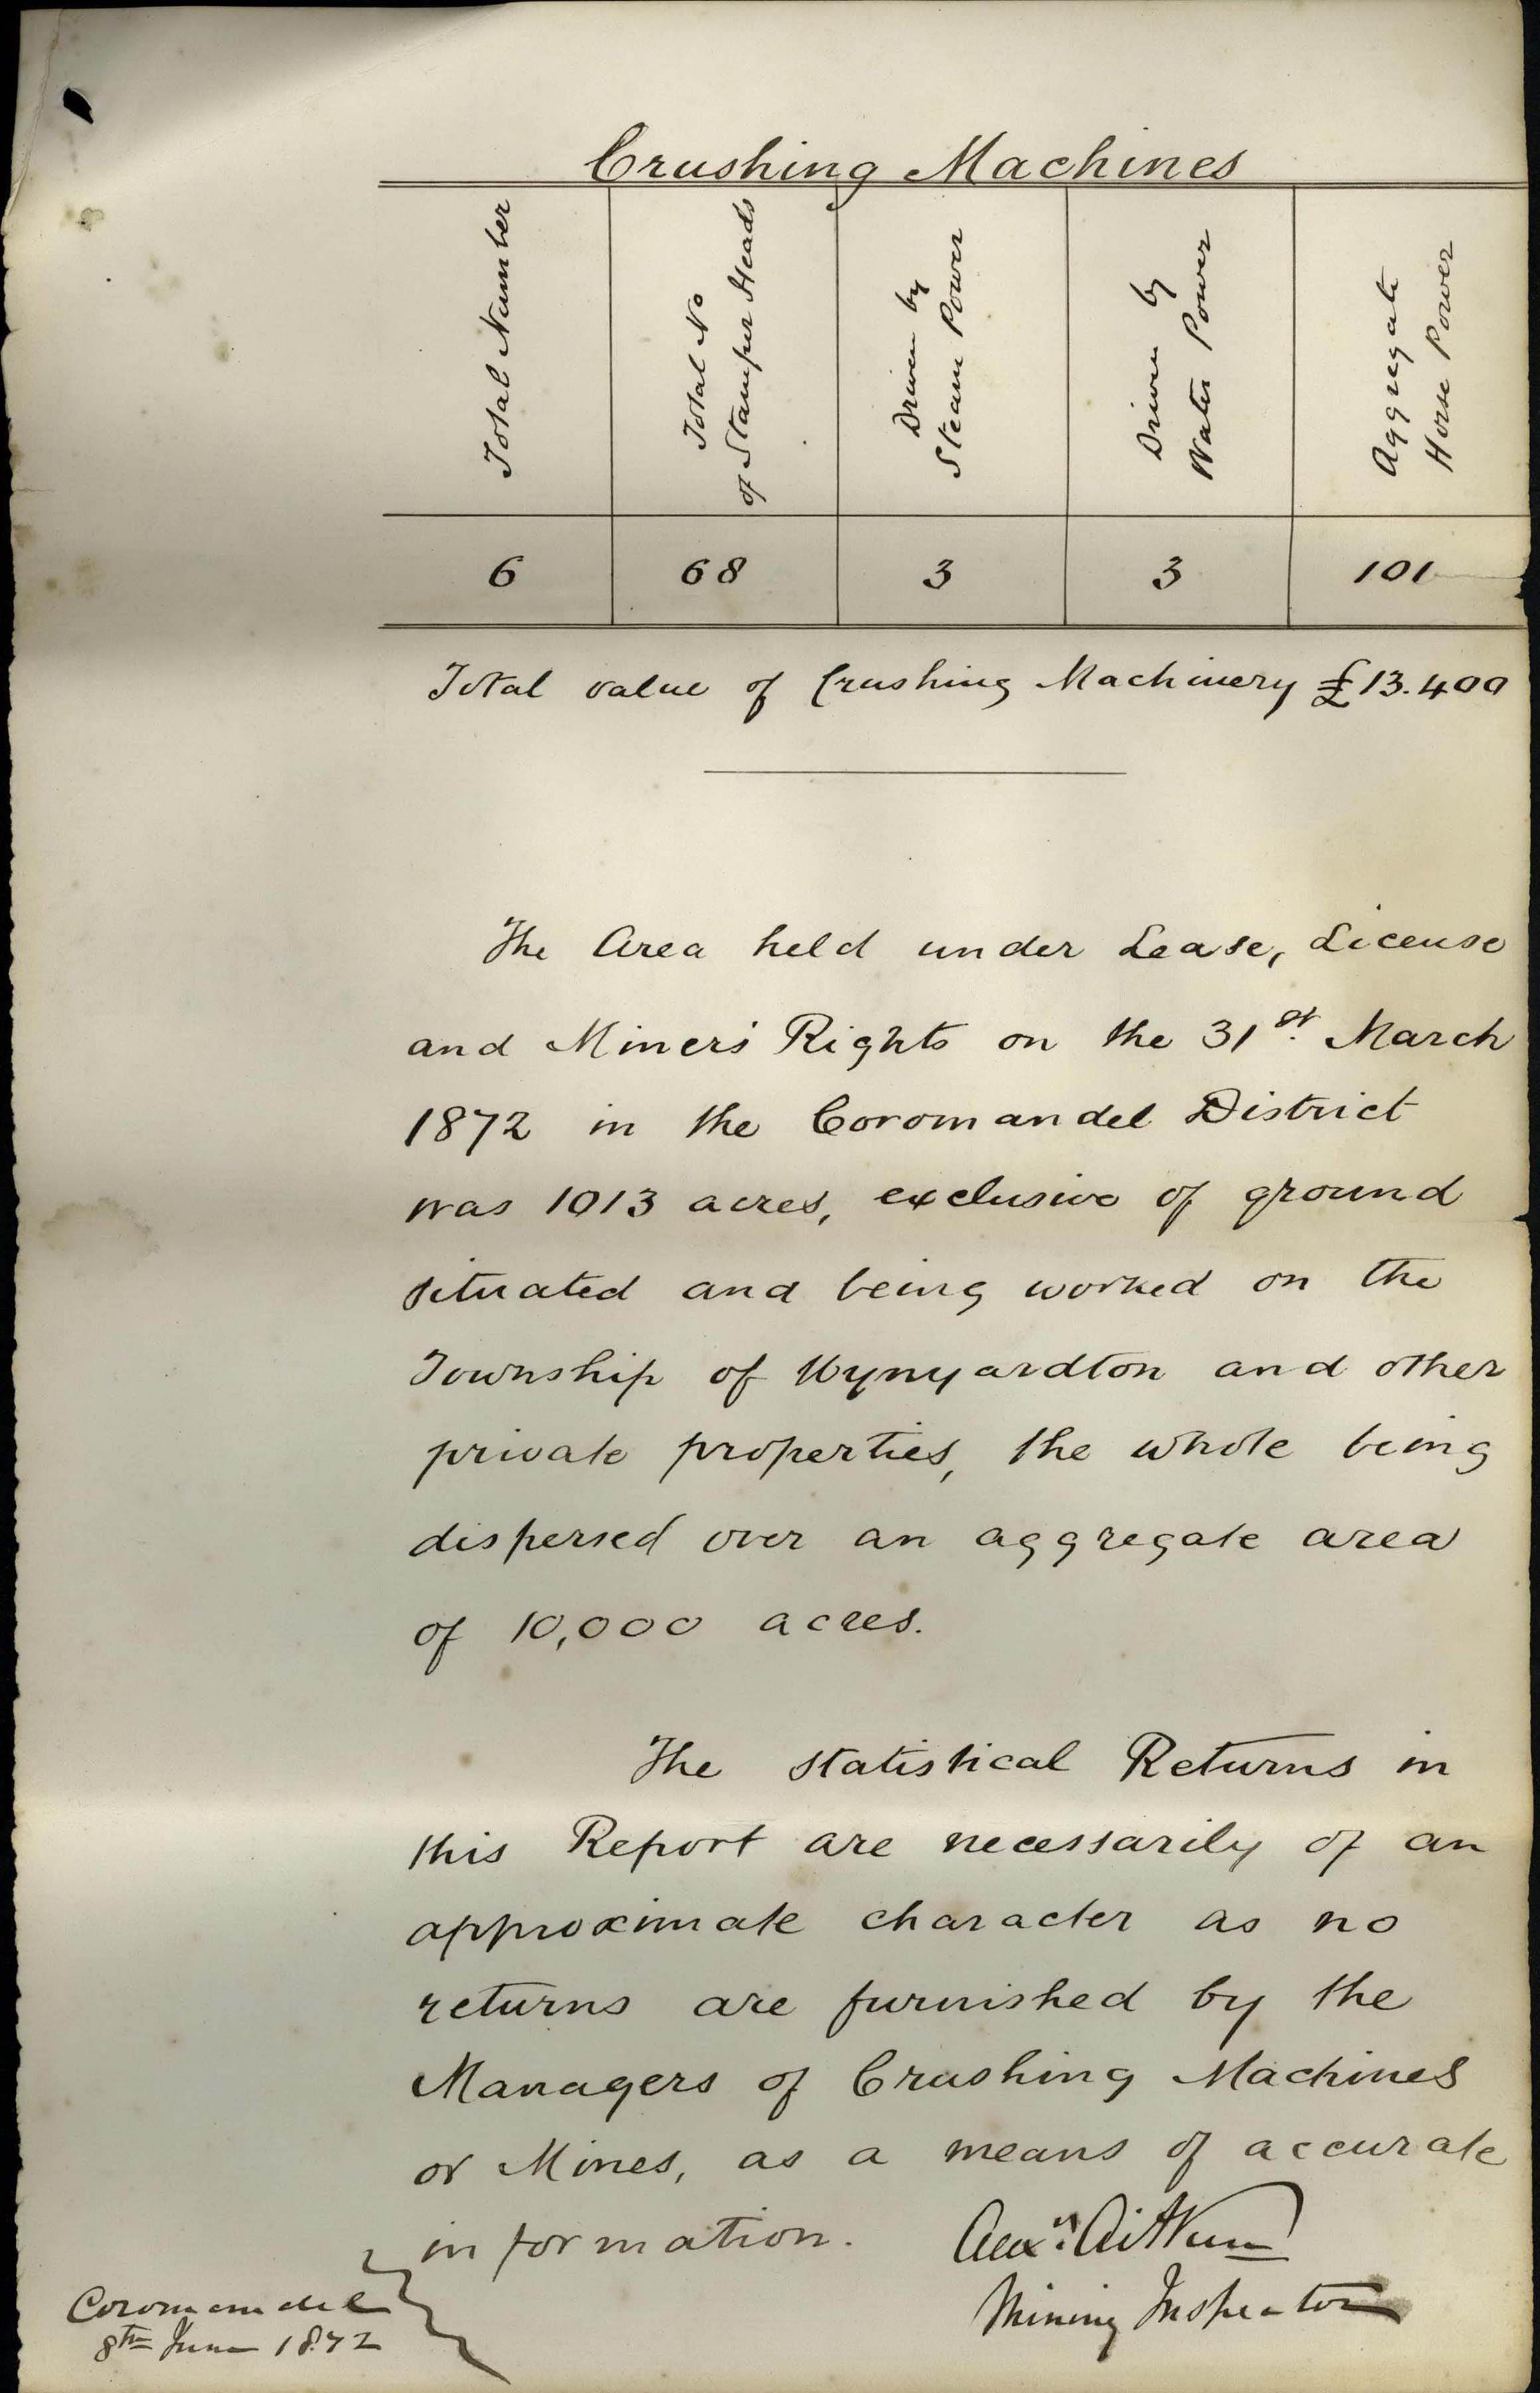 Digitised image of a handwritten mining report